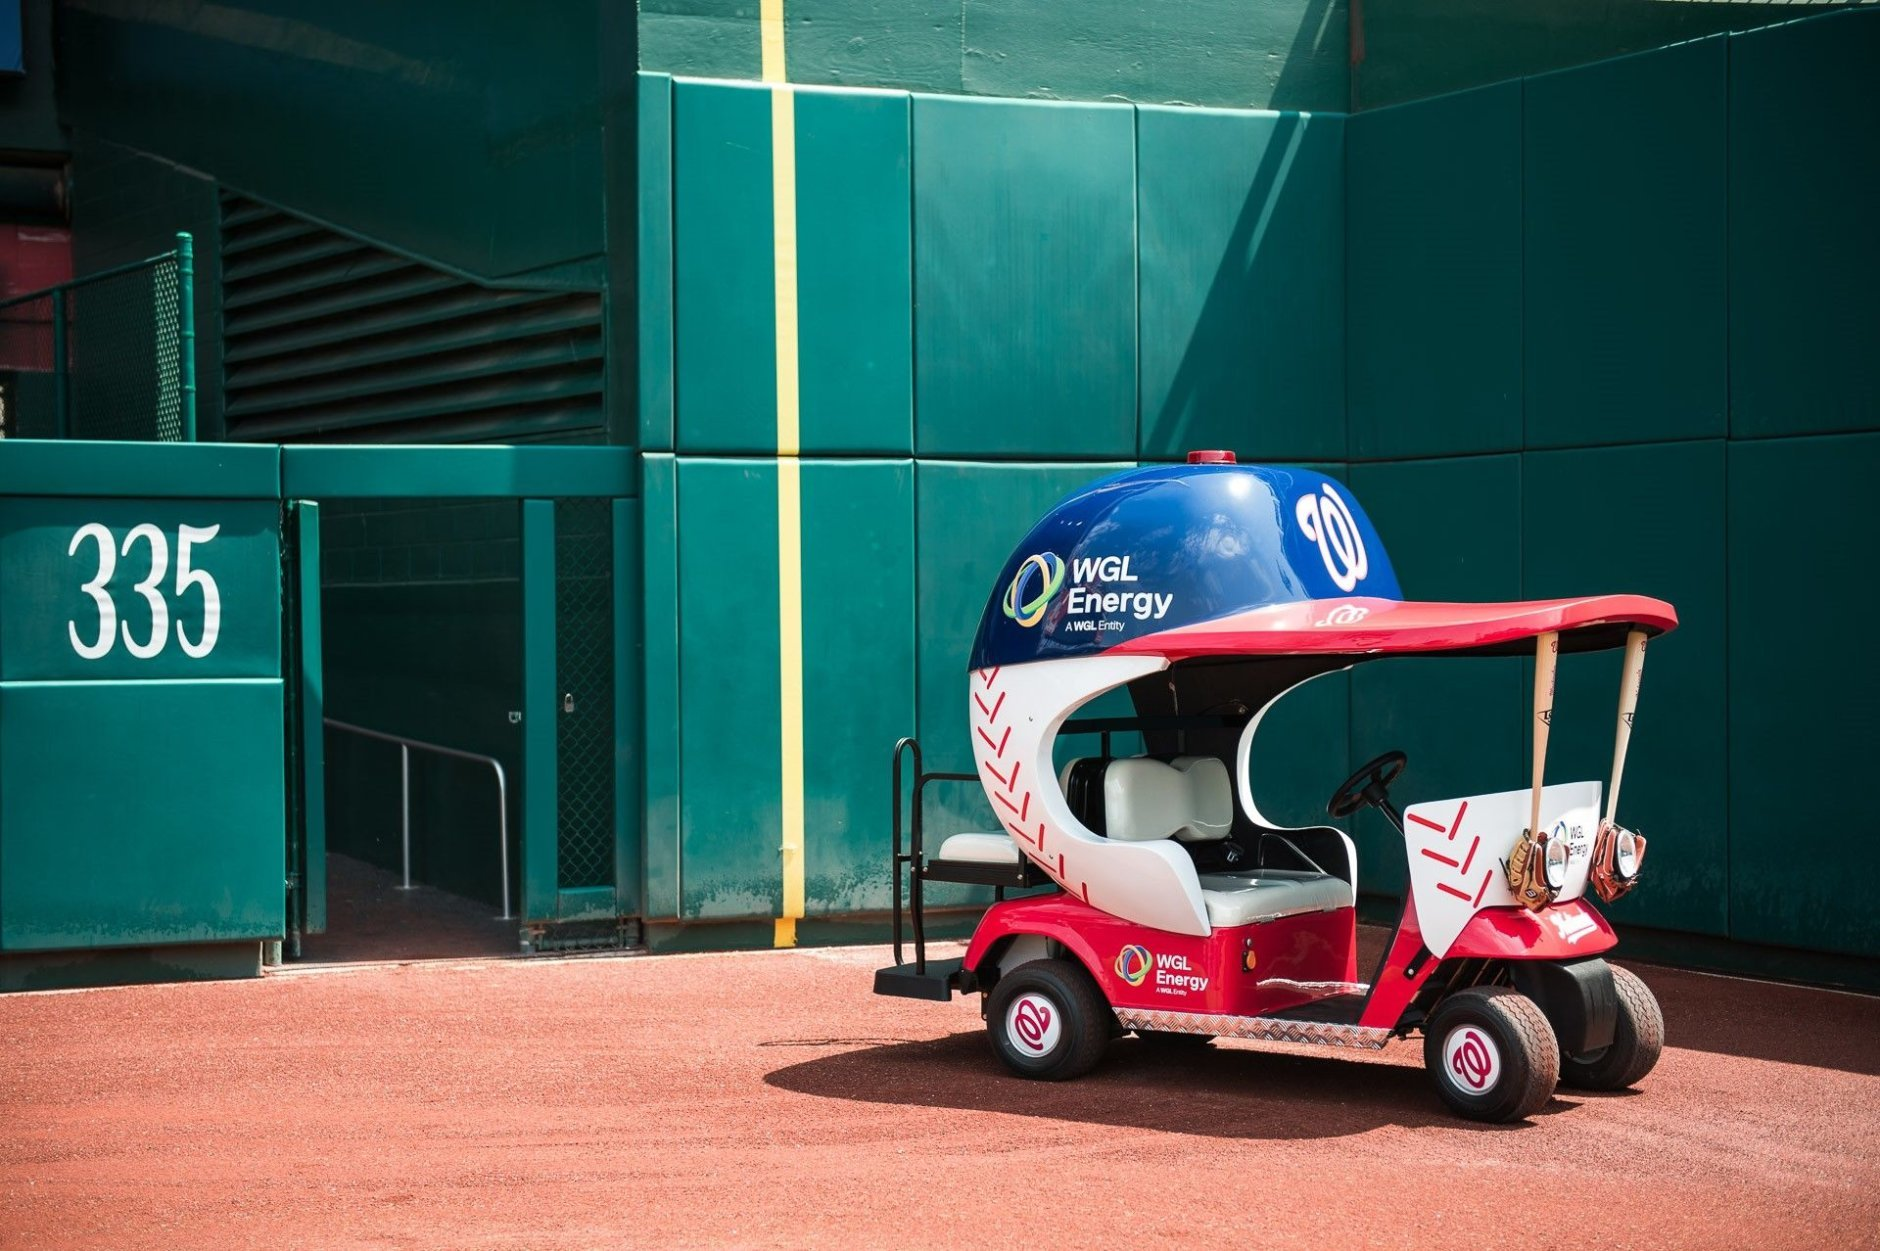 The bullpen cart at Nationals Park at its unveiling Friday. (Courtesy Washington Nationals)